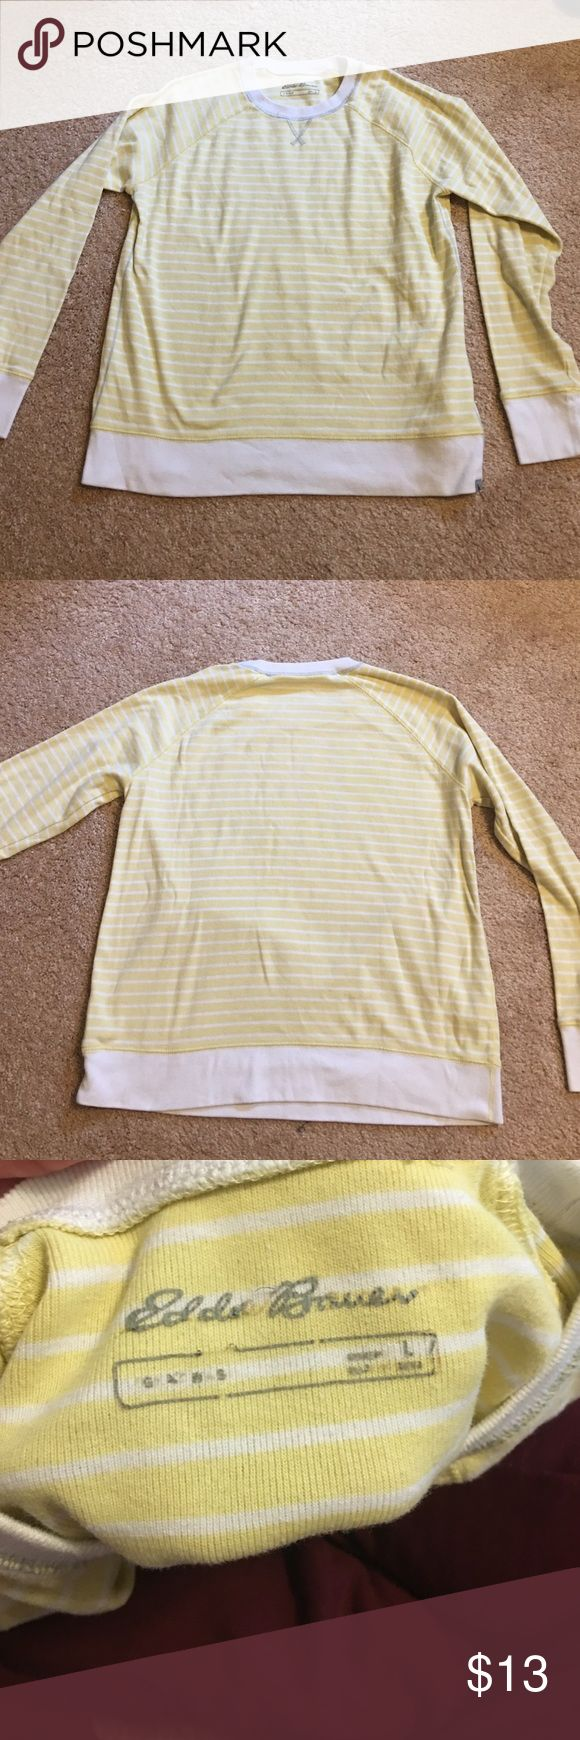 Eddie Bauer Women's Sweater Nice and comfy! Wore it mostly during my pregnancies. 2 years old. Nice and loose. Eddie Bauer Tops Sweatshirts & Hoodies